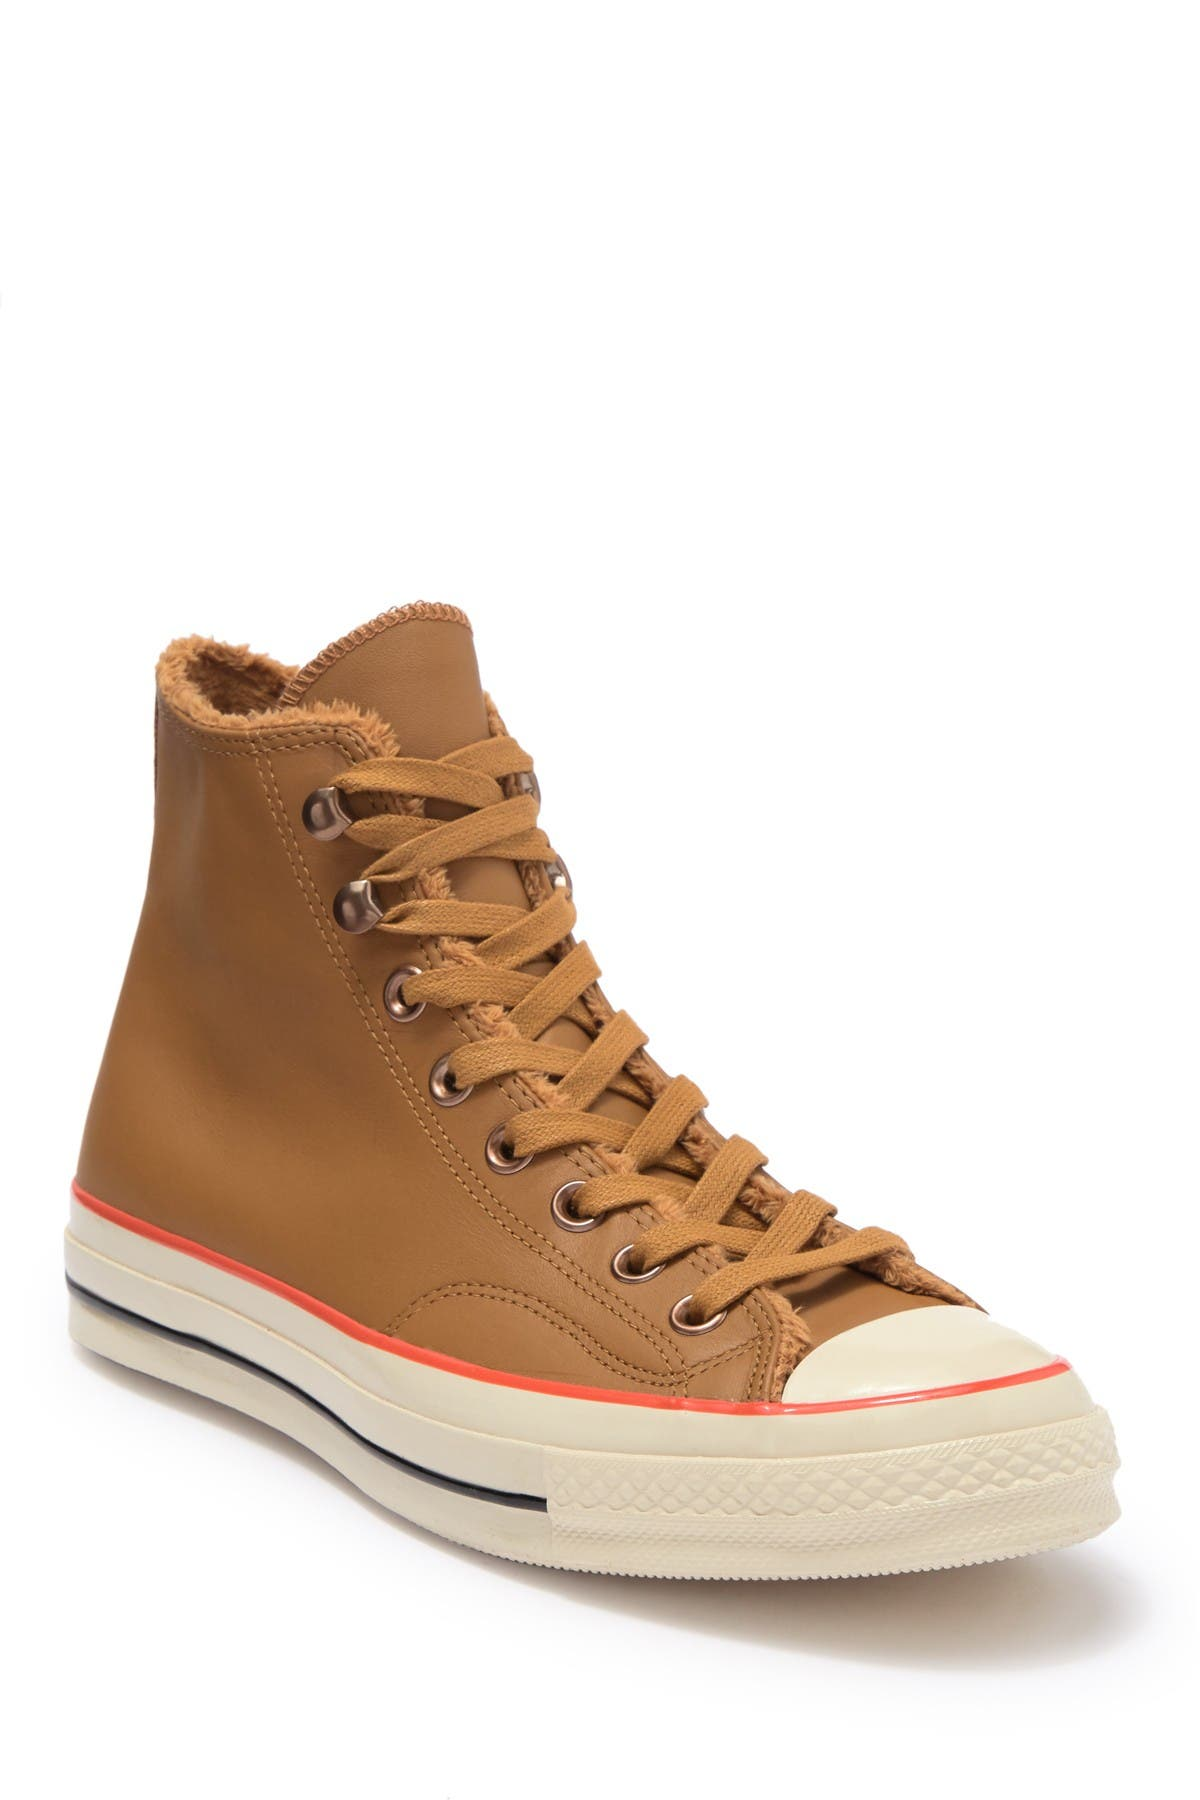 Converse Faux Fur Leather High Top Sneaker Nordstrom Rack